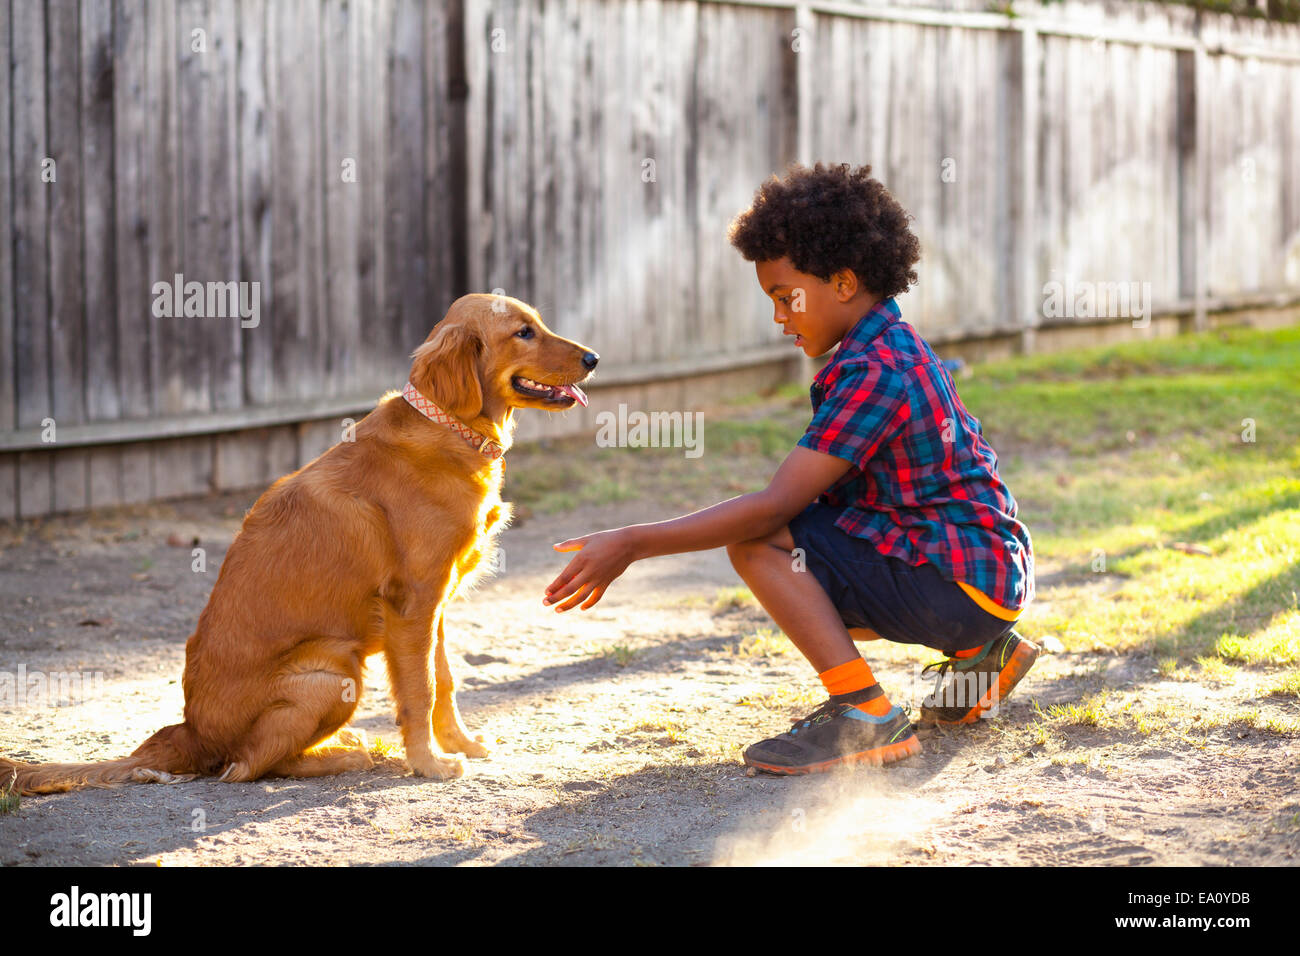 Boy training dog to give paw in garden - Stock Image